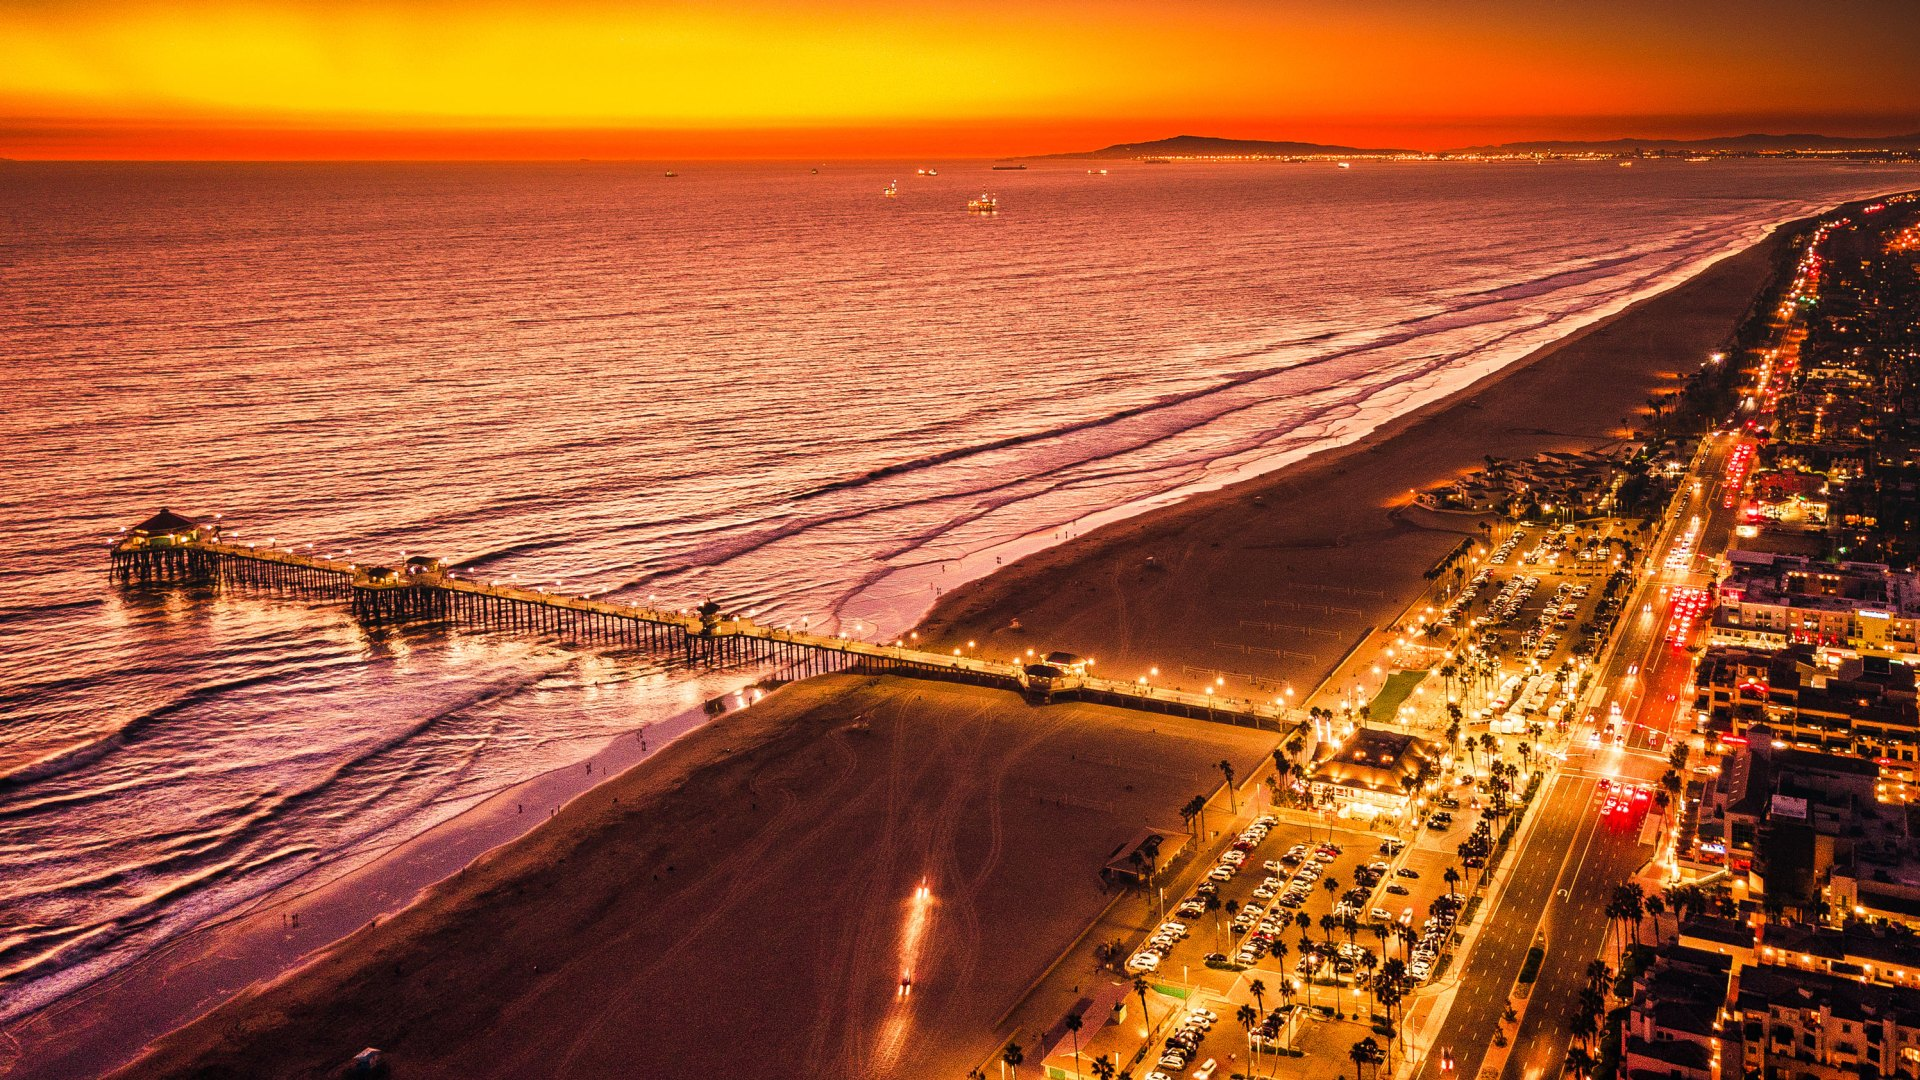 Weekends Huntington Beach: Surf, Skate, Boat and Unwind in SoCal's Premier Coastal Destination